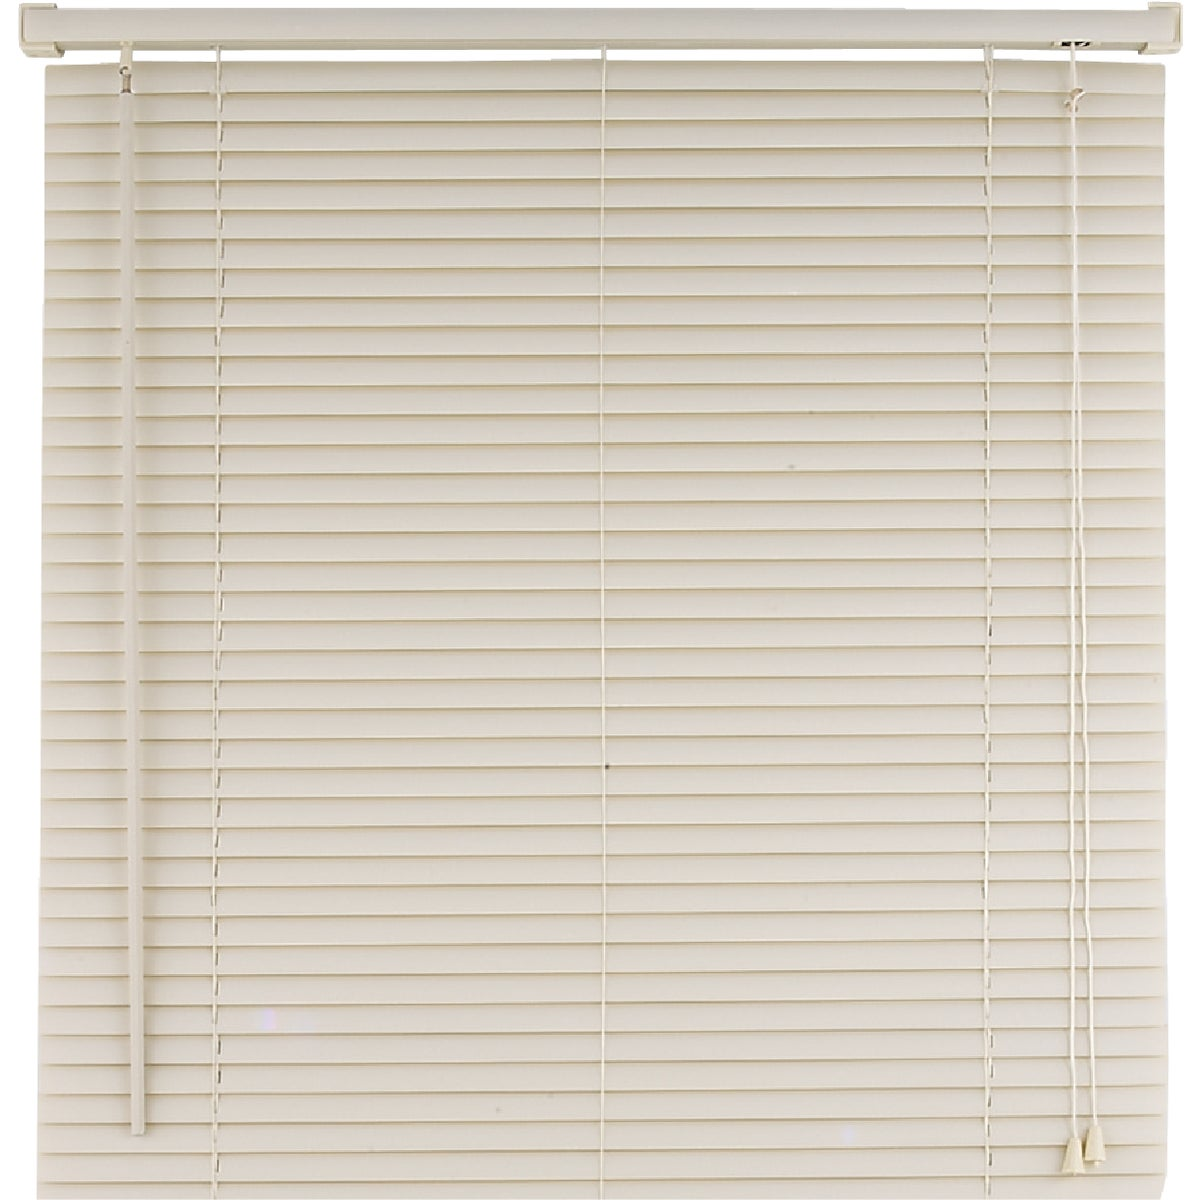 29X64 ALABASTER BLIND - 15037 by Lotus Wind Incom